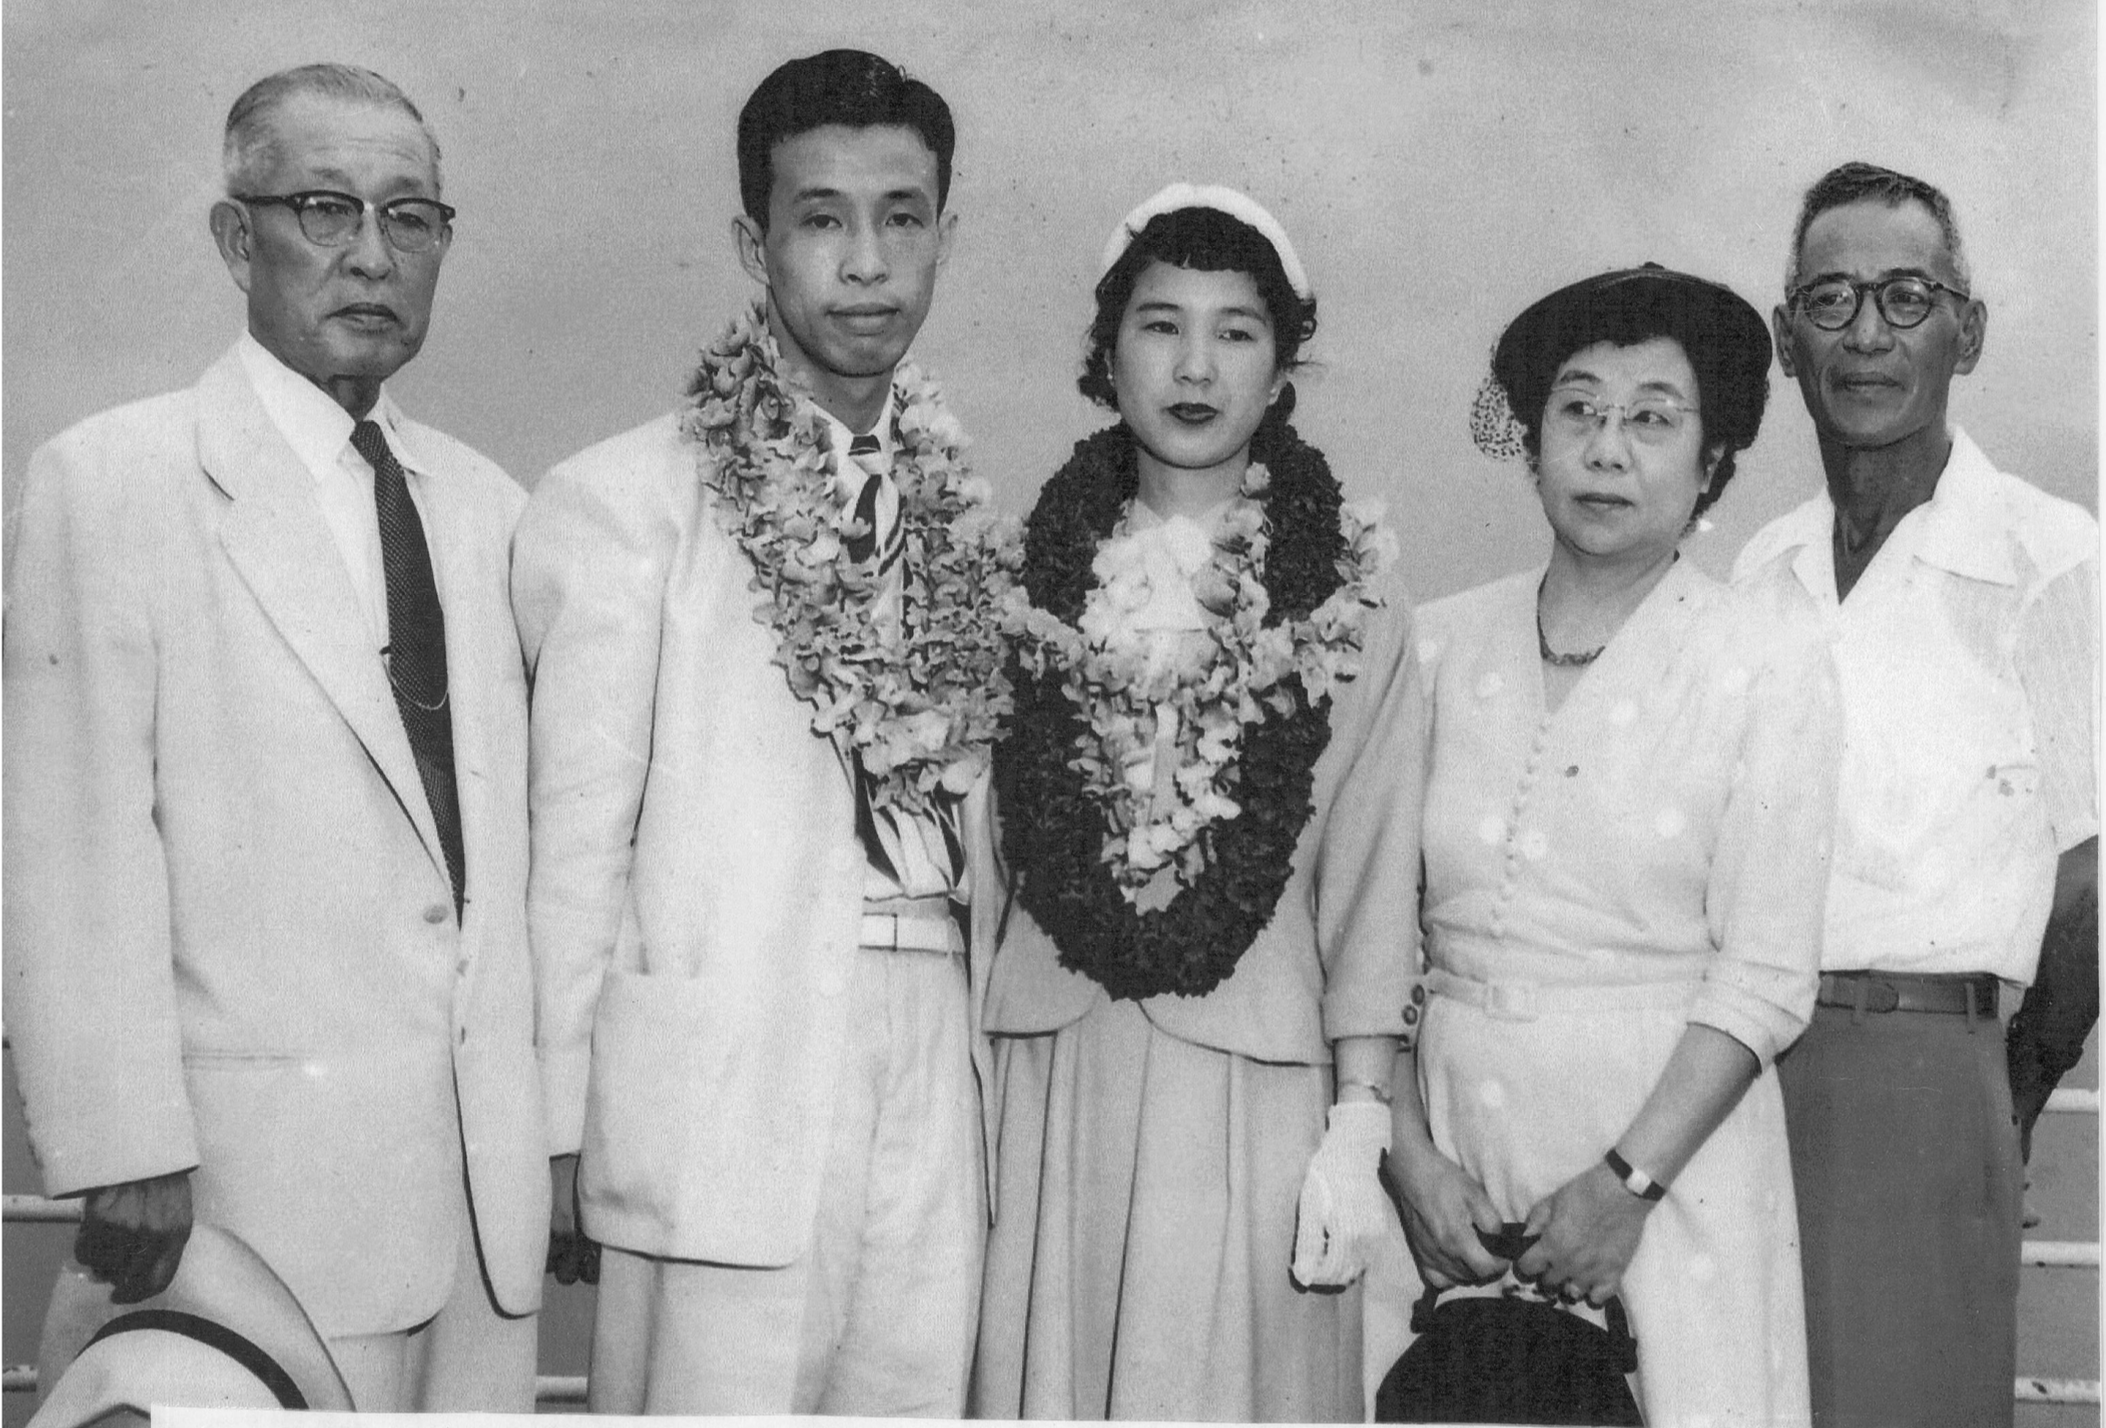 Takao and Misayo Nihei (wearing lei) are greeted at Honolulu Harbor in 1956 by Honolulu Sake Brewing Co., Ltd. president Daizo Sumida (far left), his wife Fusao Sumida; and Susumu Nomura, Honolulu Sake's director of operations. (Photos courtesy Misayo Nihei)